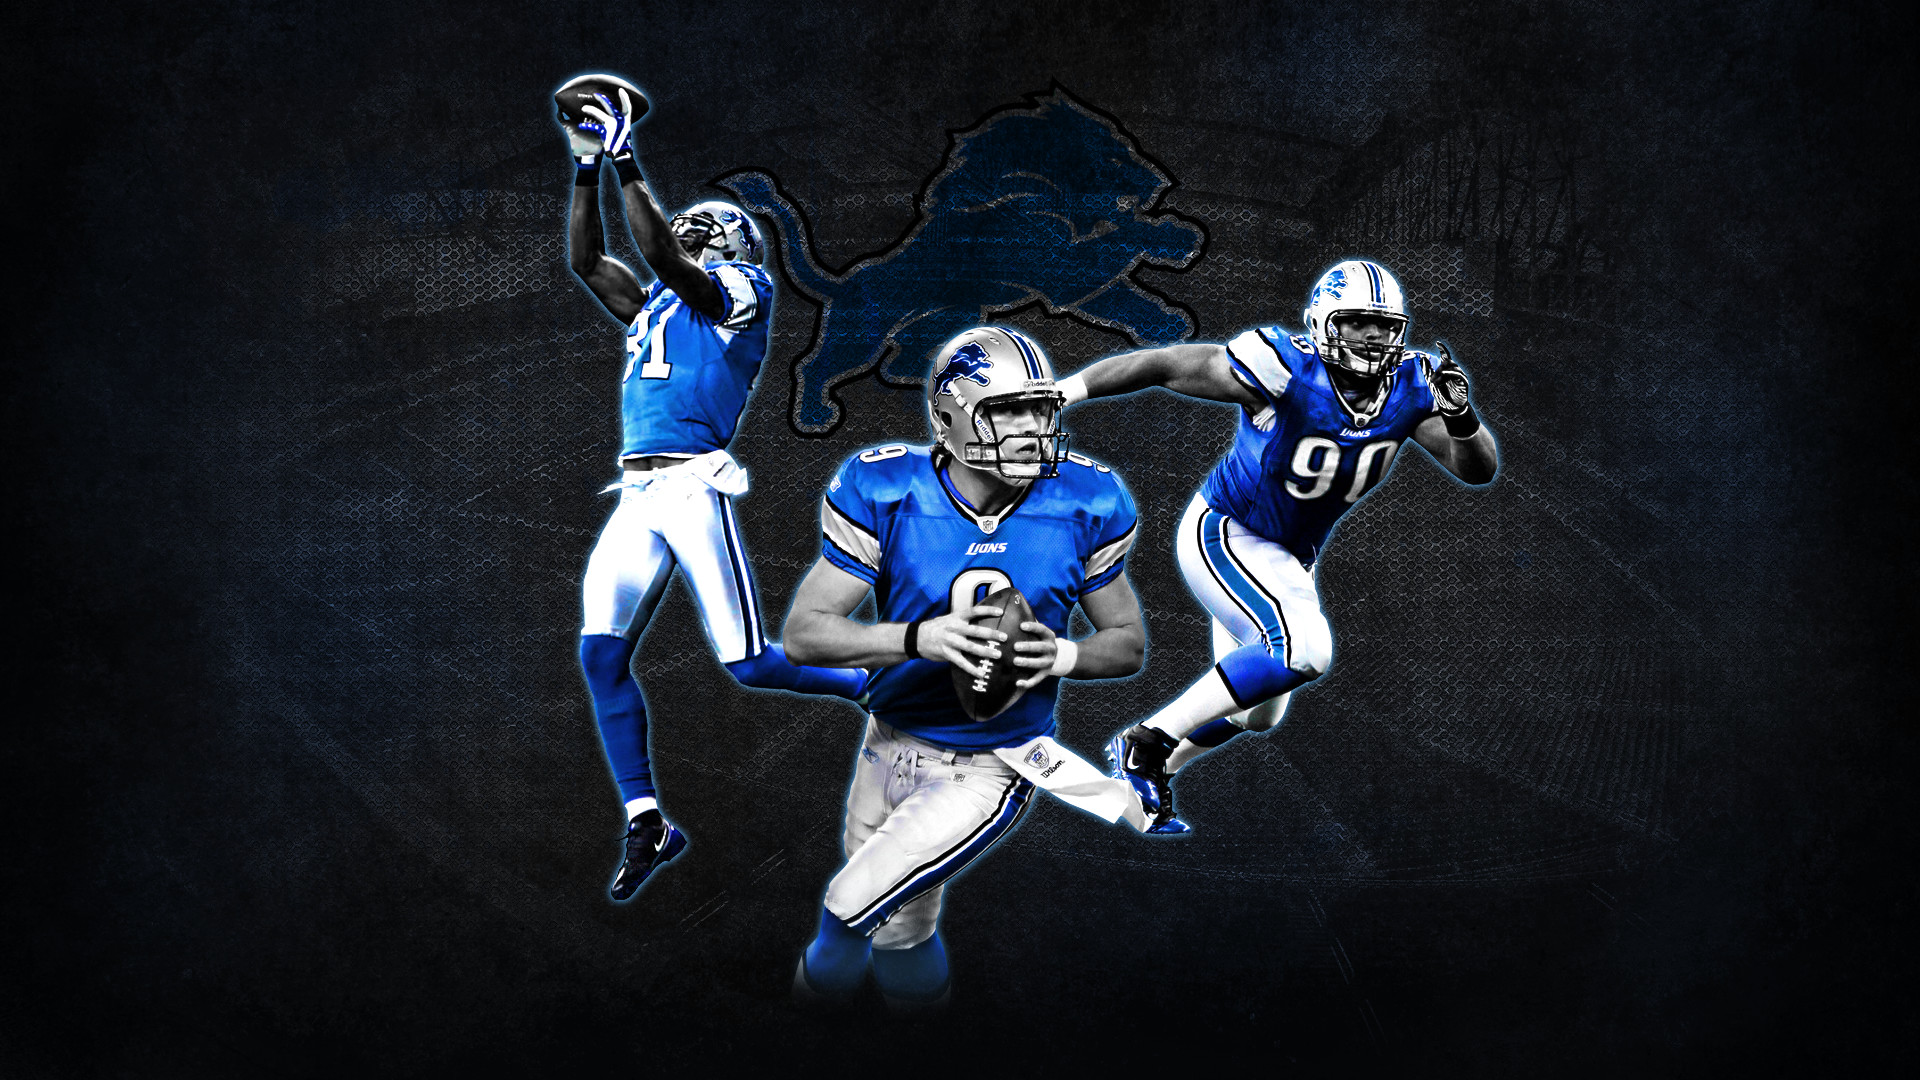 1920x1080 Detroit Lions Wallpaper HD